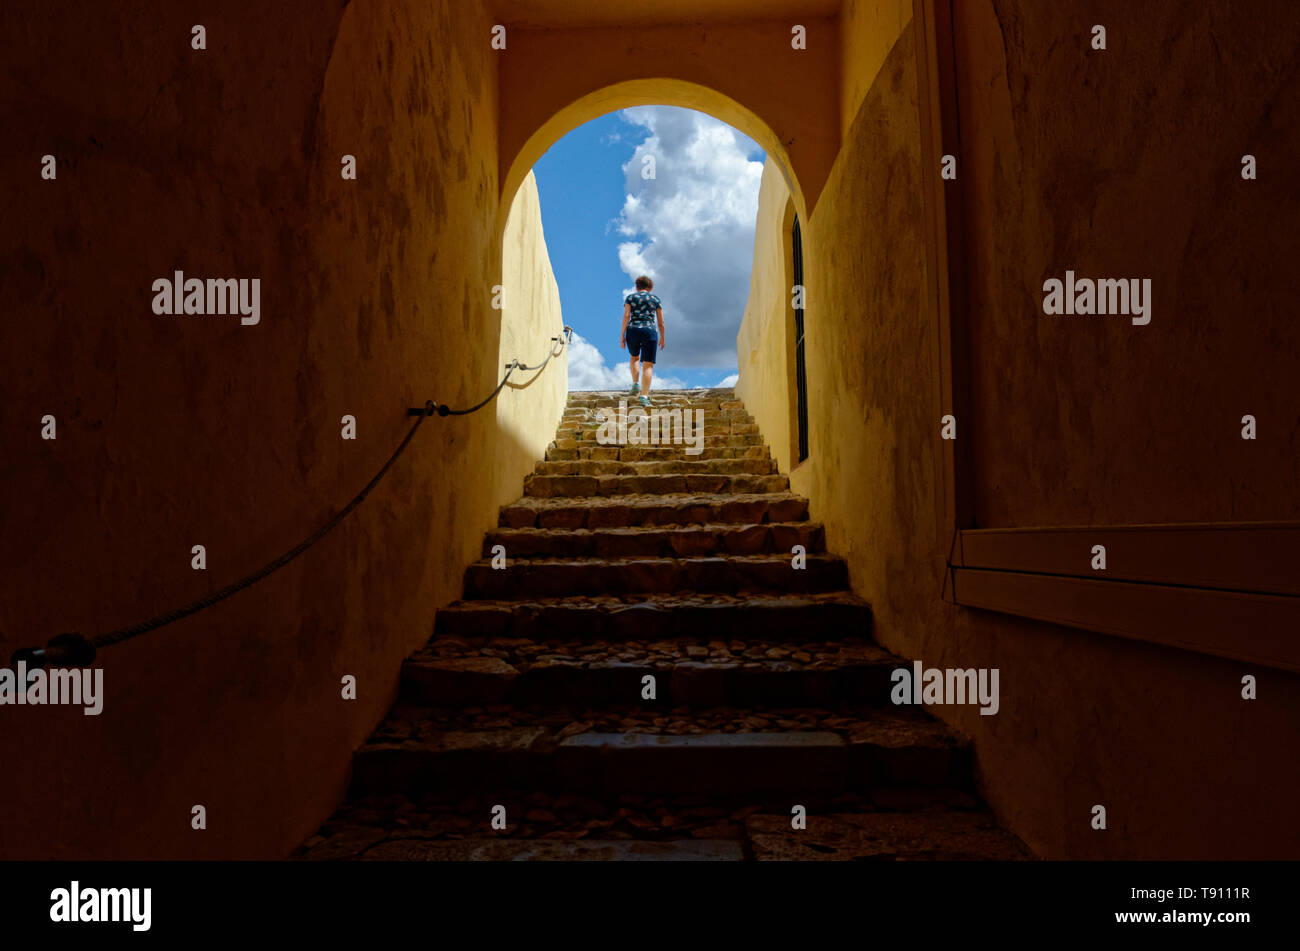 Climbing stairs out of darkness into the light at Forte de Santa Luzia, Elvas, Portugal - Stock Image